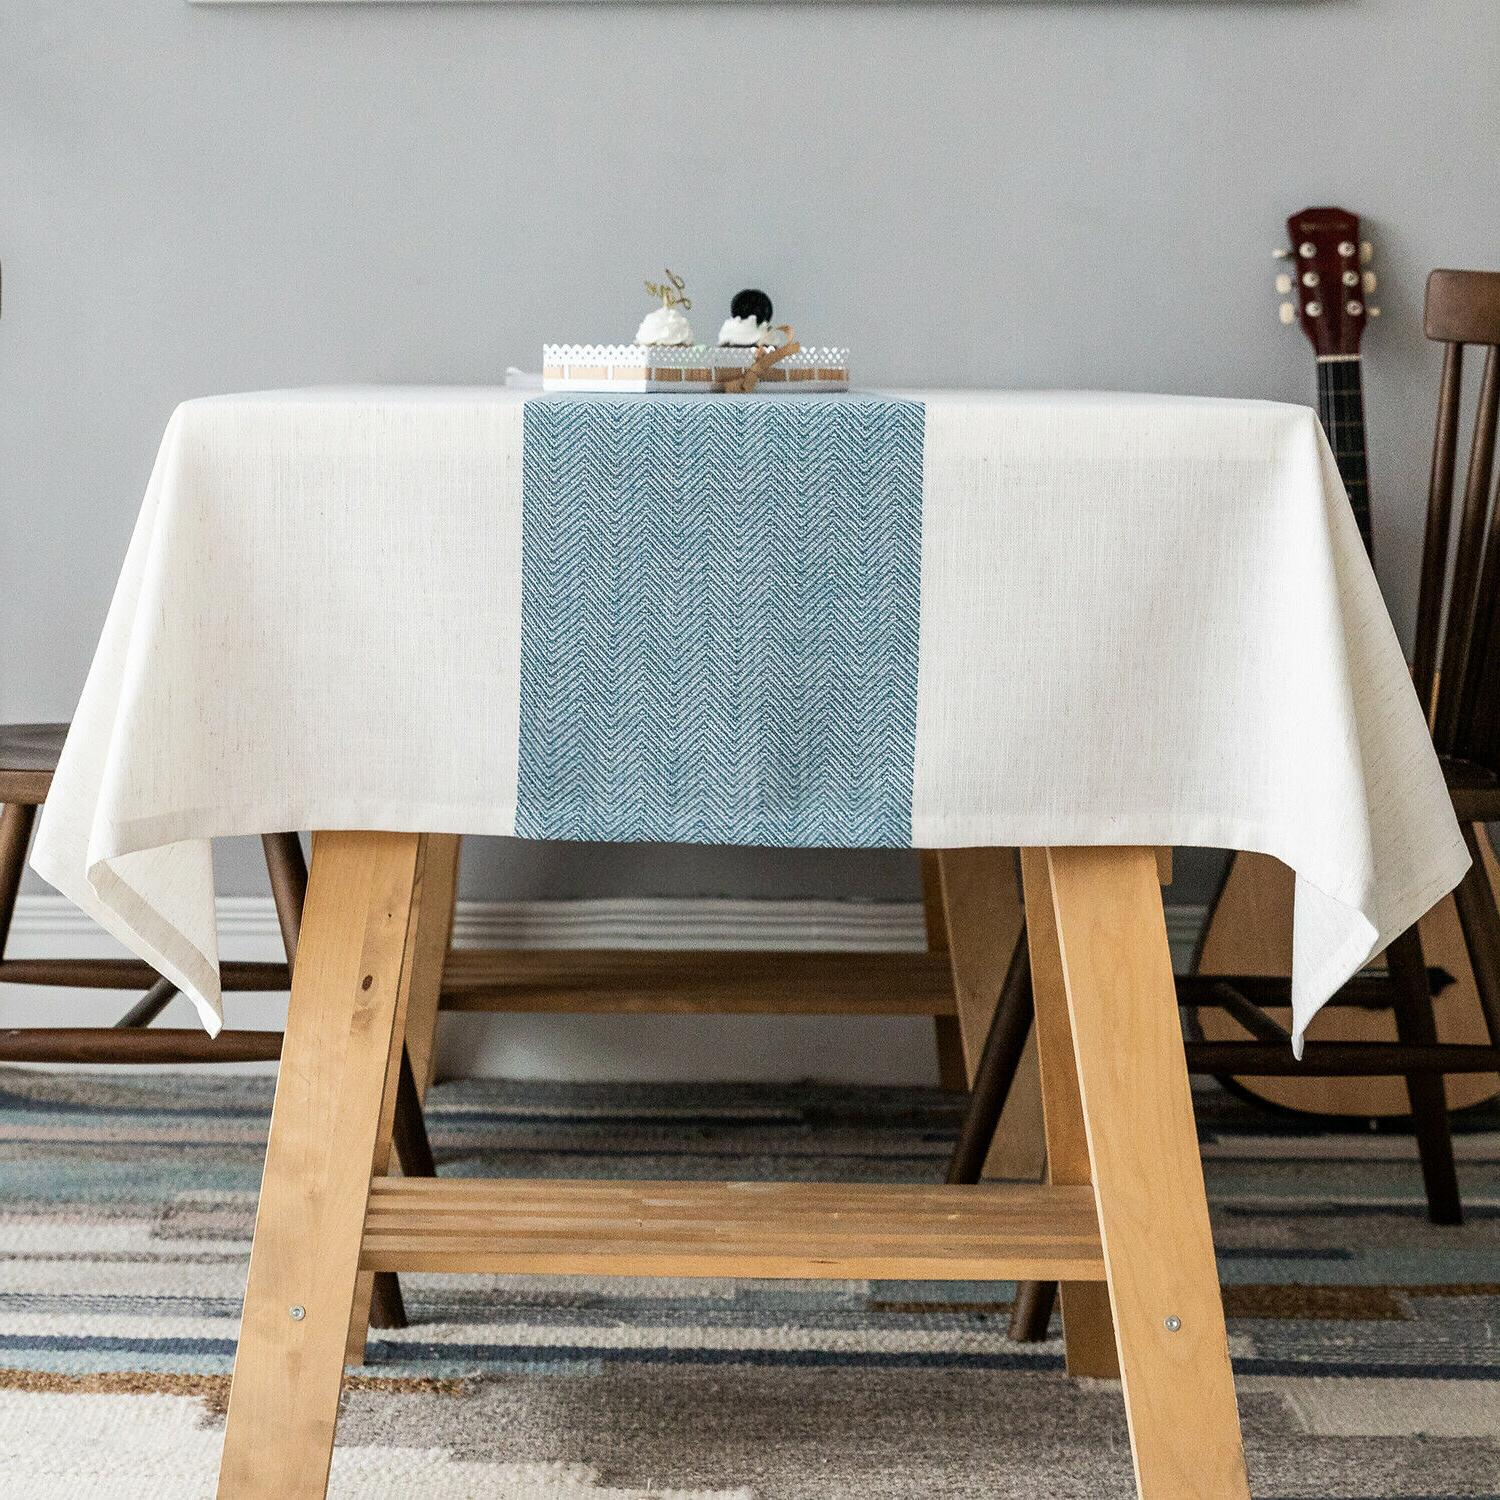 linen tablecloth waterproof table cover for kitchen